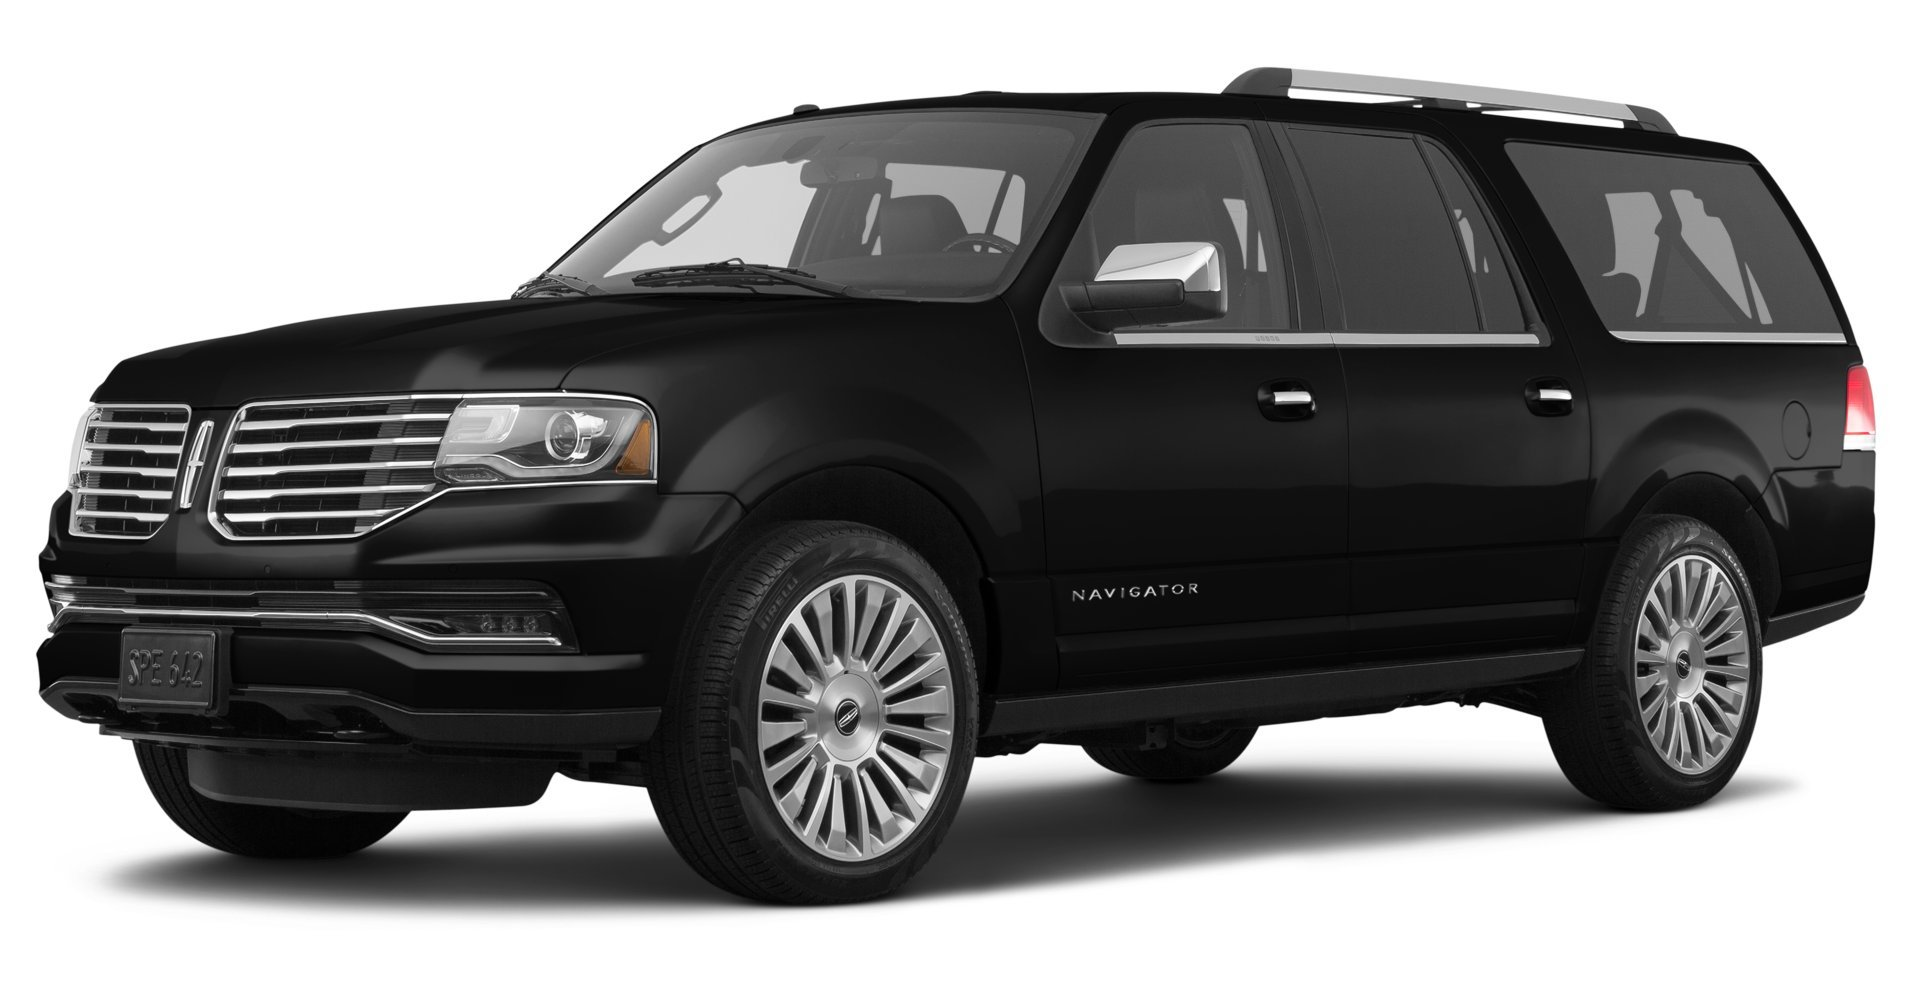 2017 Lincoln Navigator Msrp >> Amazon.com: 2017 Cadillac Escalade Reviews, Images, and Specs: Vehicles